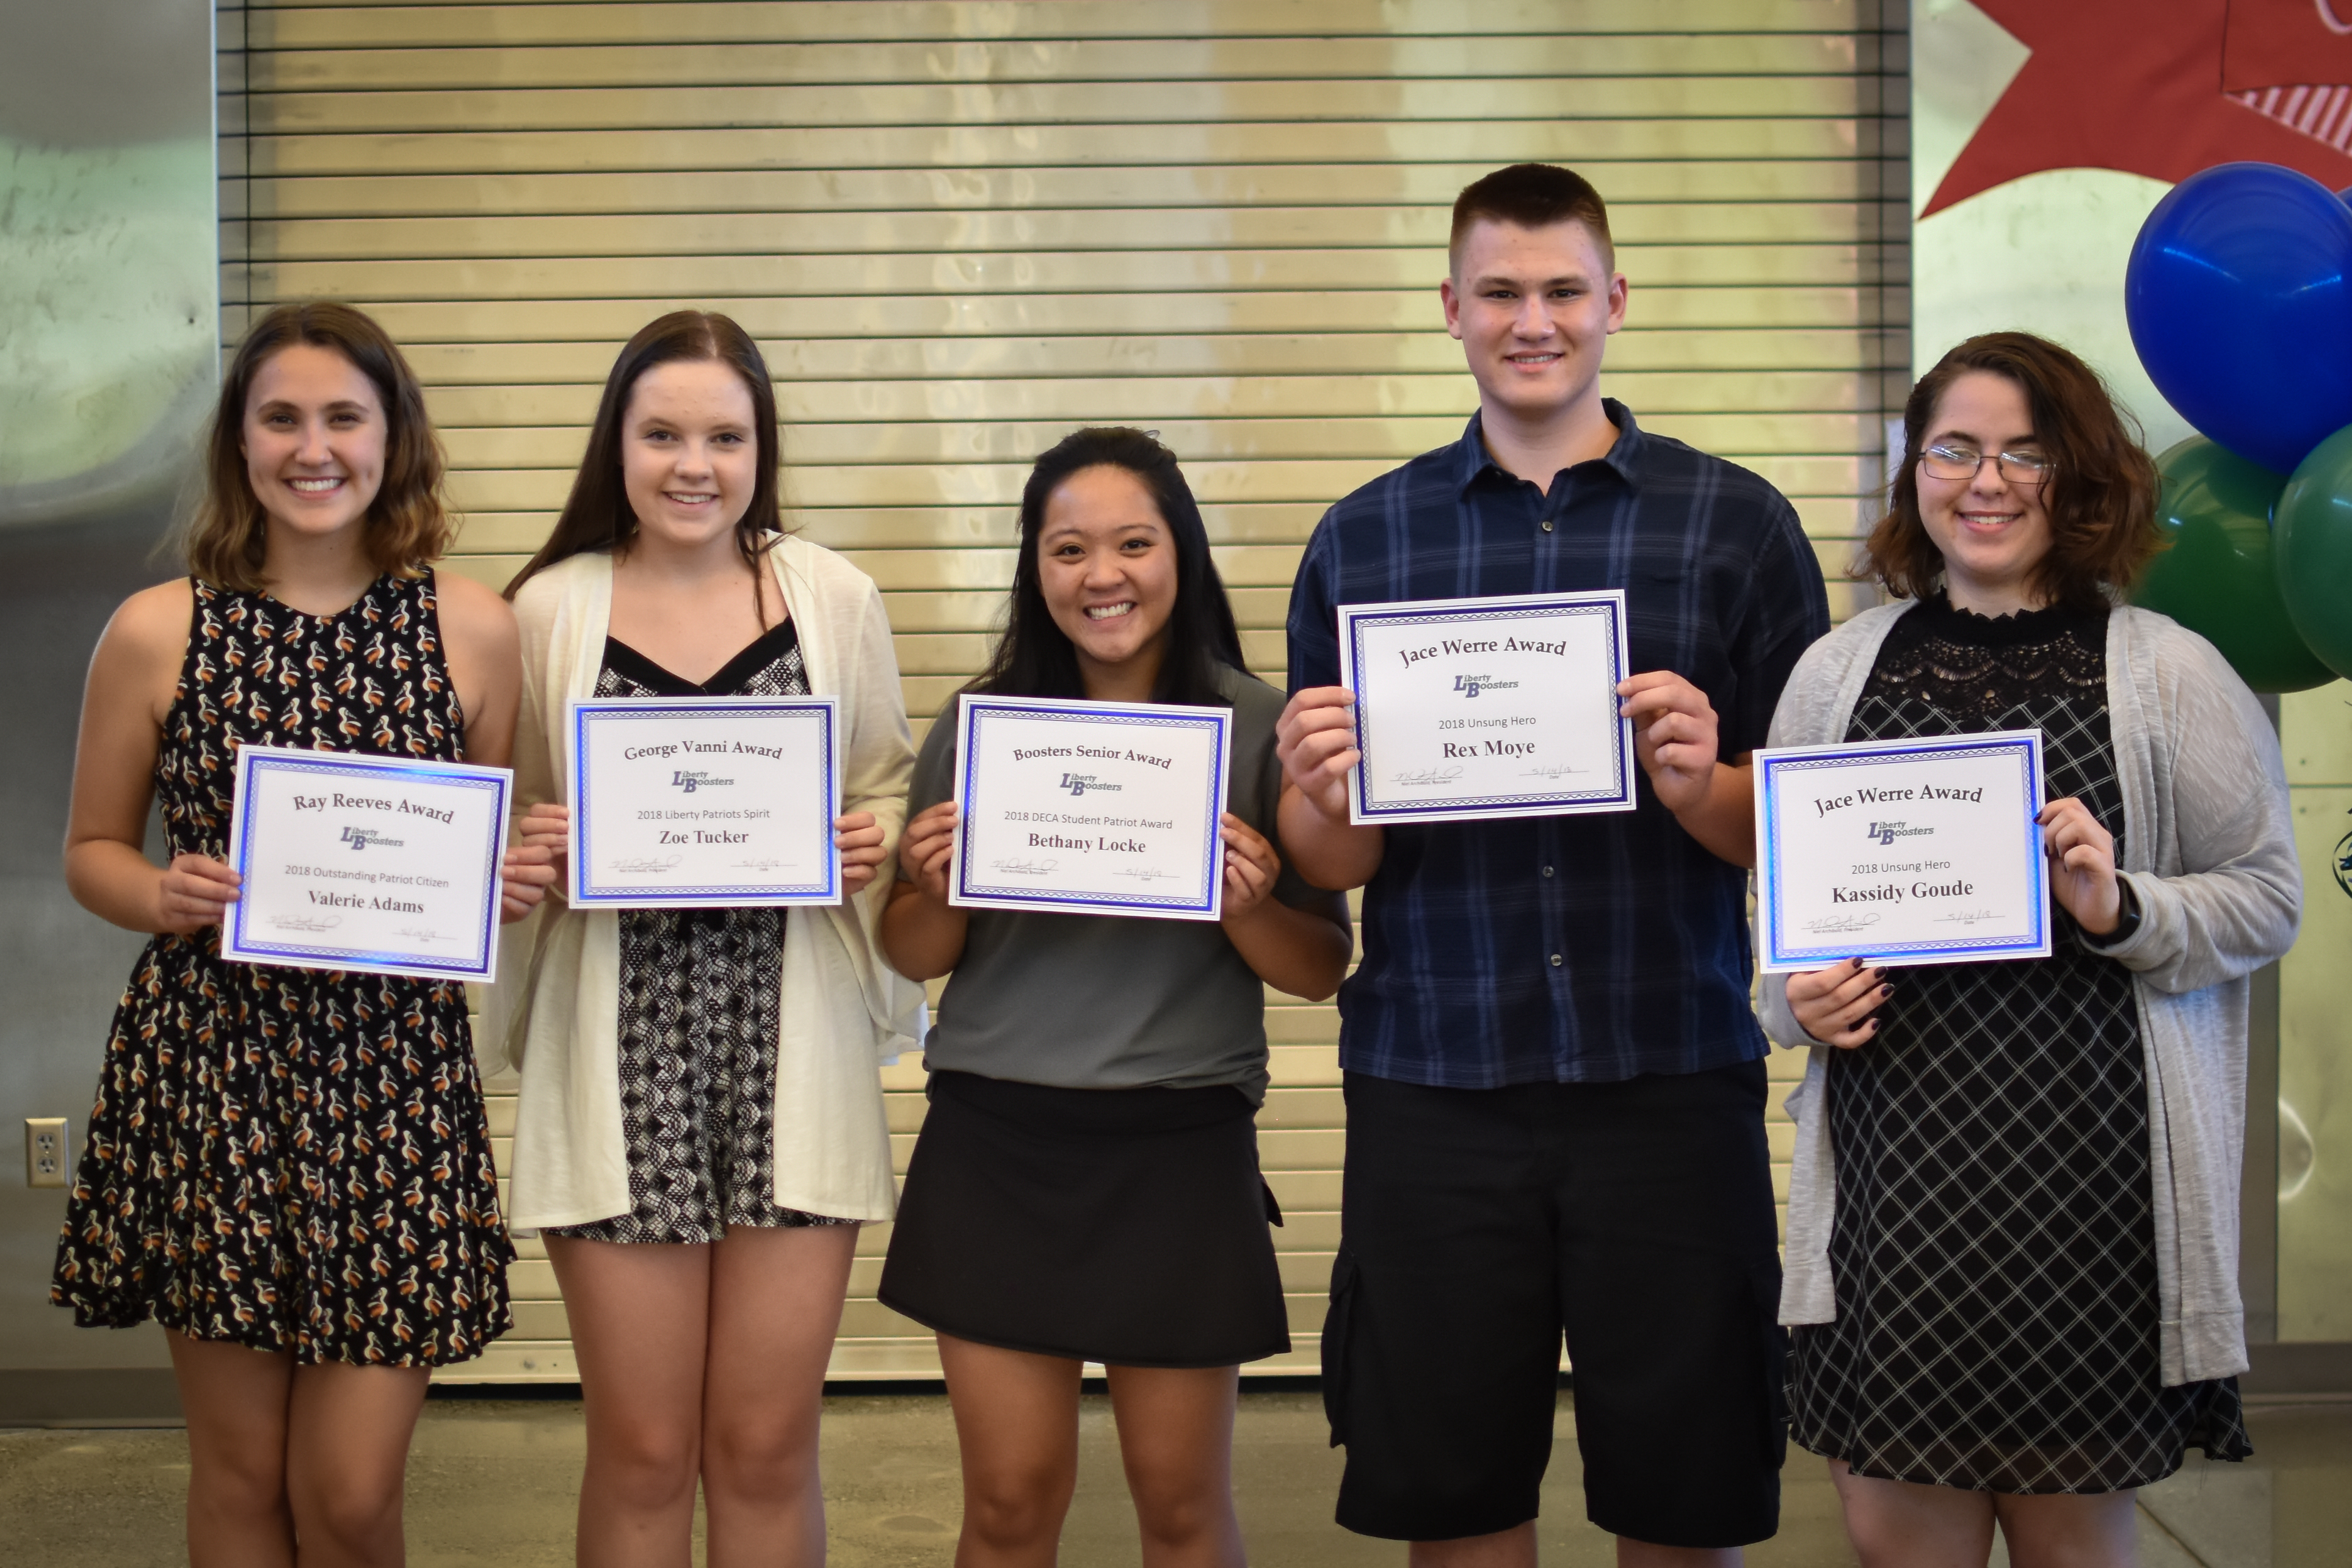 Booster Club Senior Award Recipients